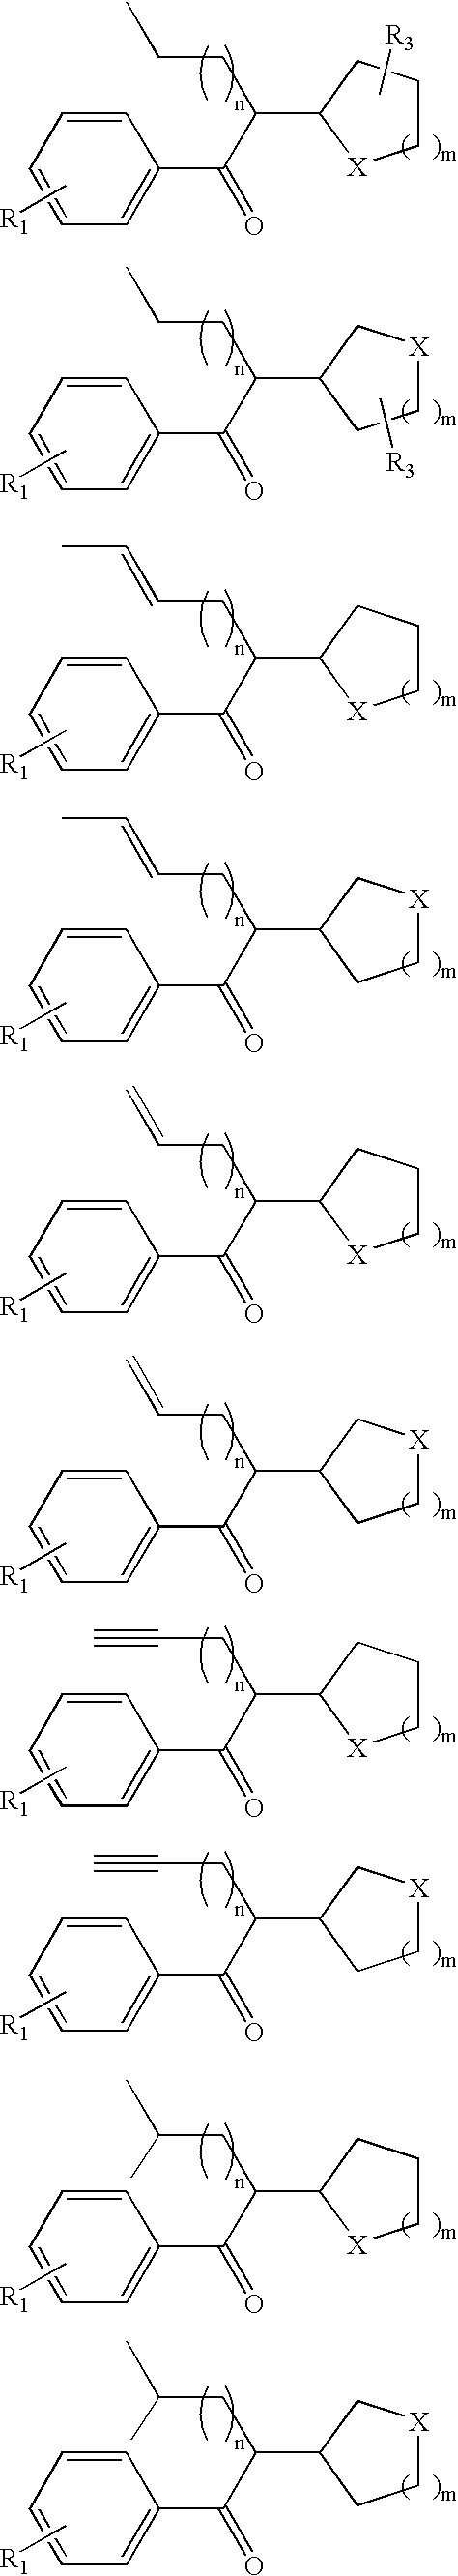 US20080234498A1 - Pyrovalerone Analogues and Therapeutic Uses